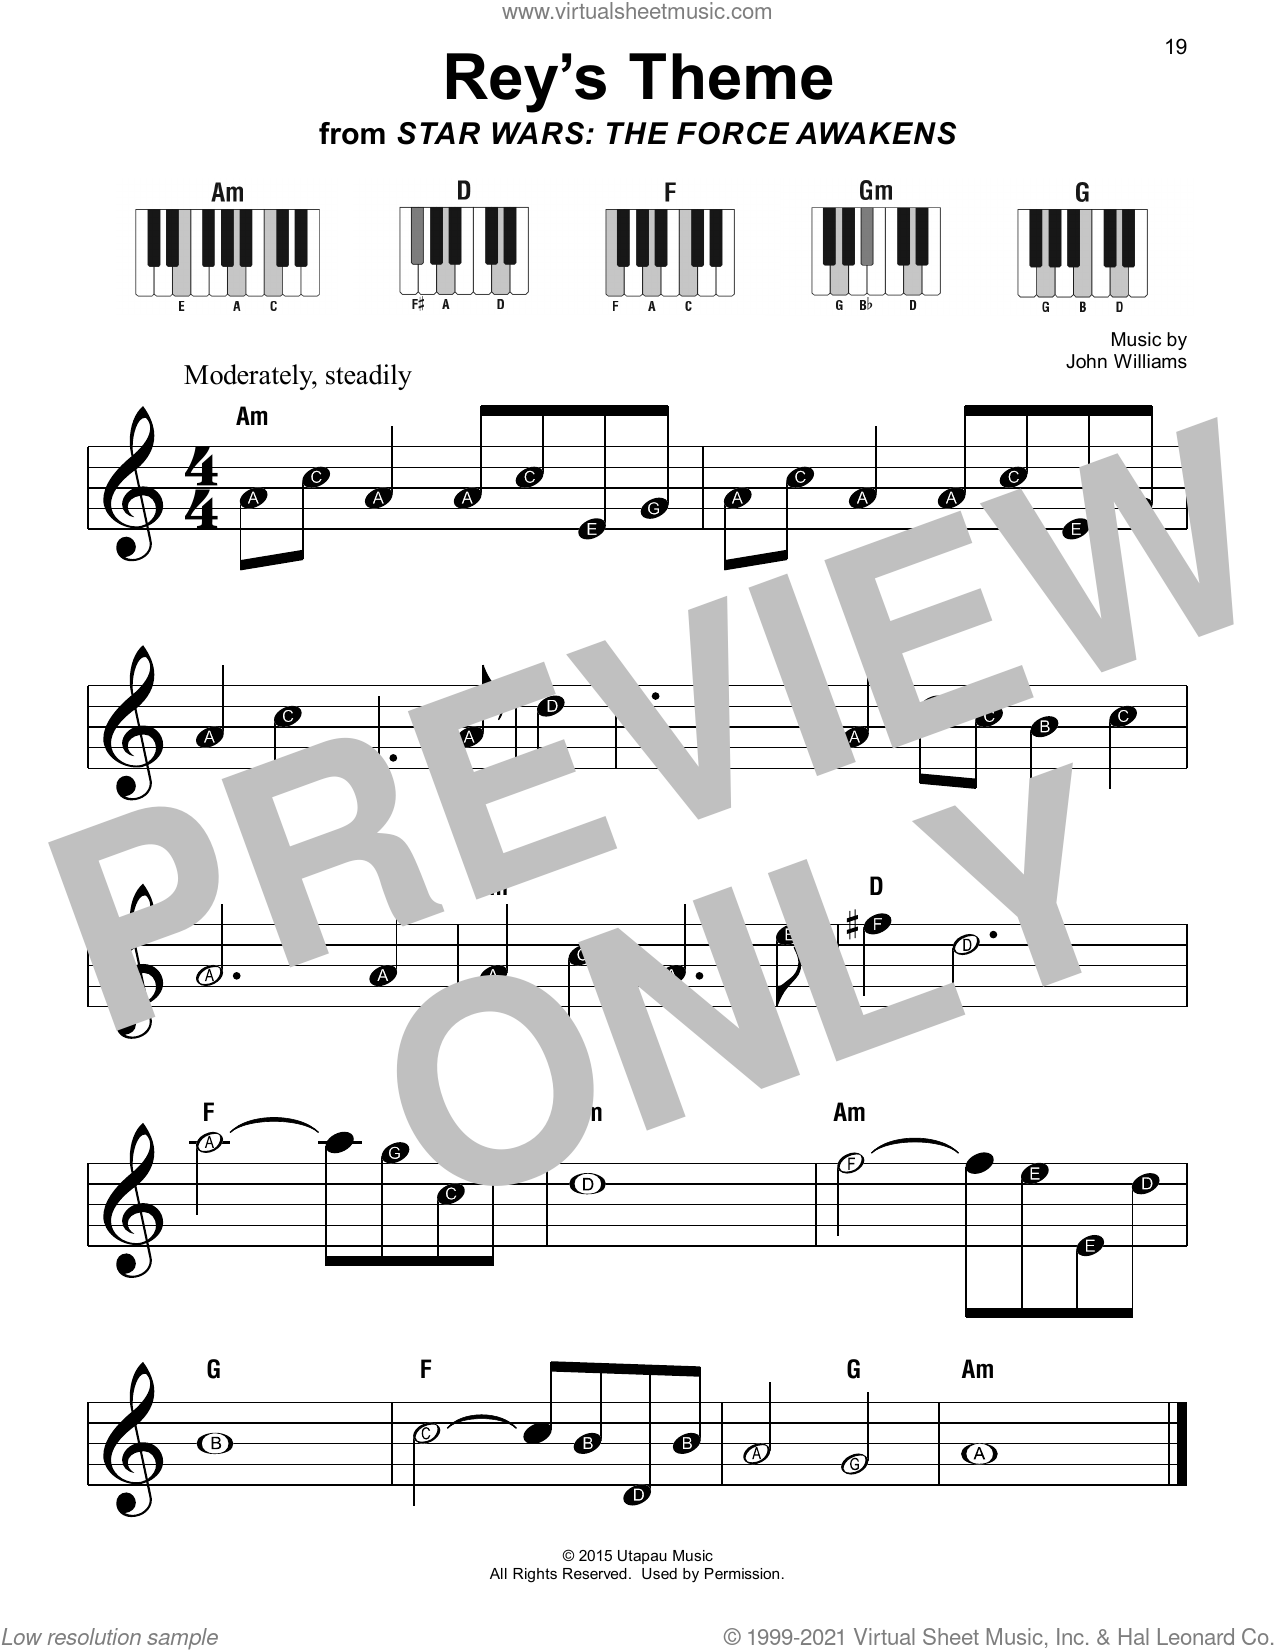 Rey's Theme (from Star Wars: The Force Awakens) sheet music for piano solo by John Williams, beginner skill level